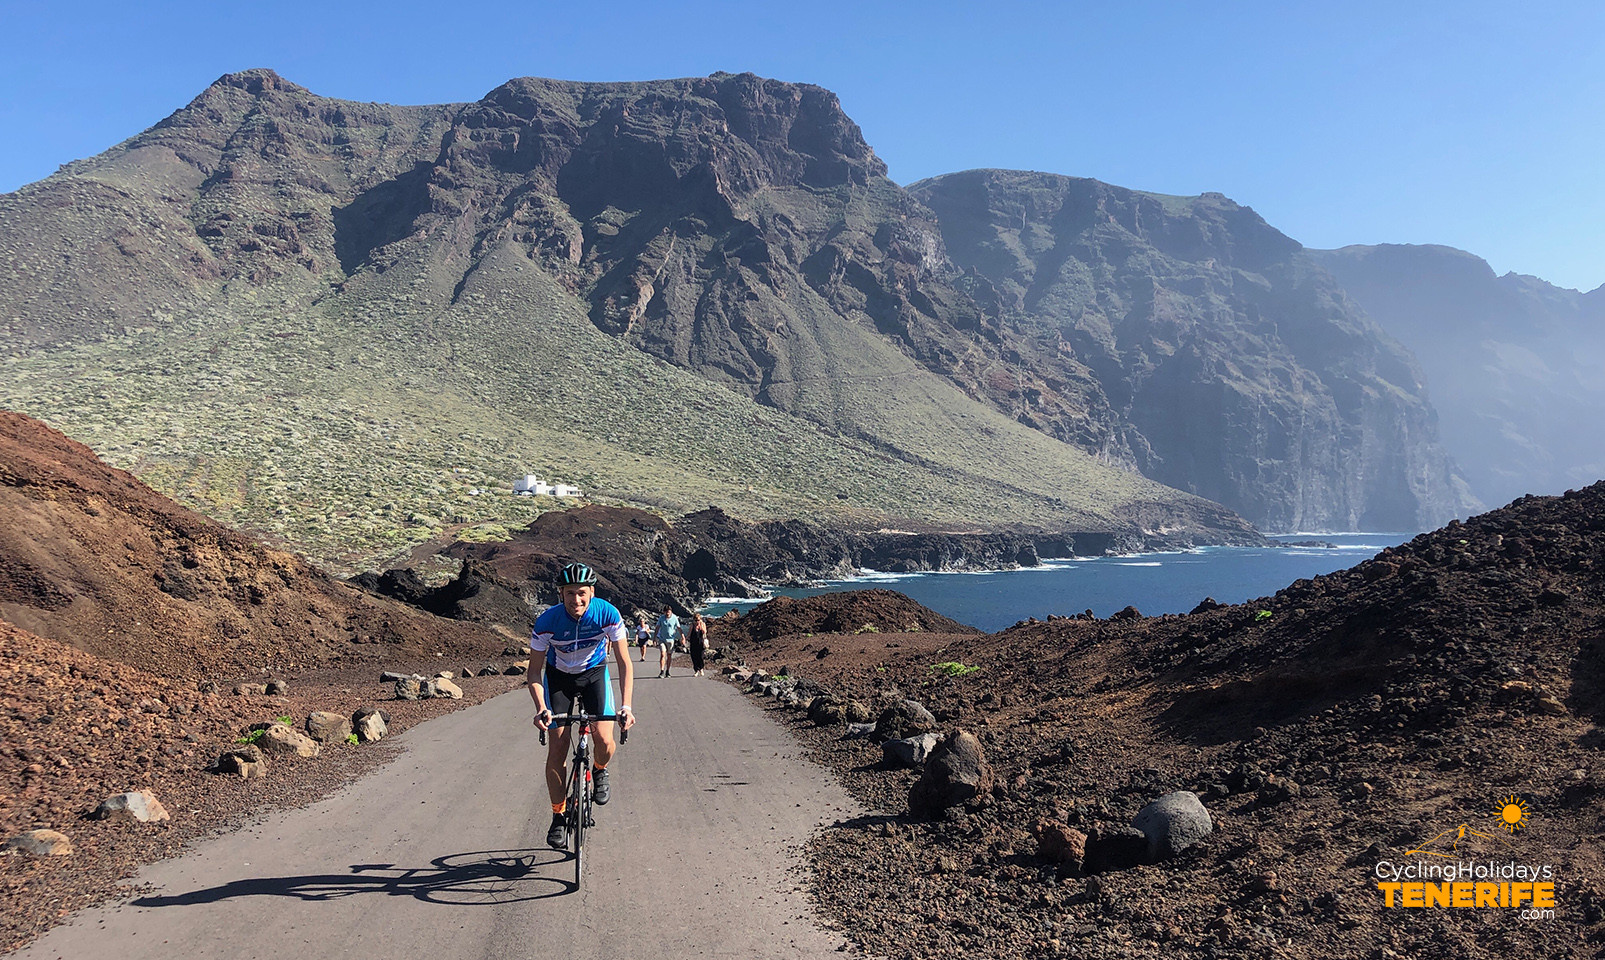 guided cycling tour tenerife.jpg